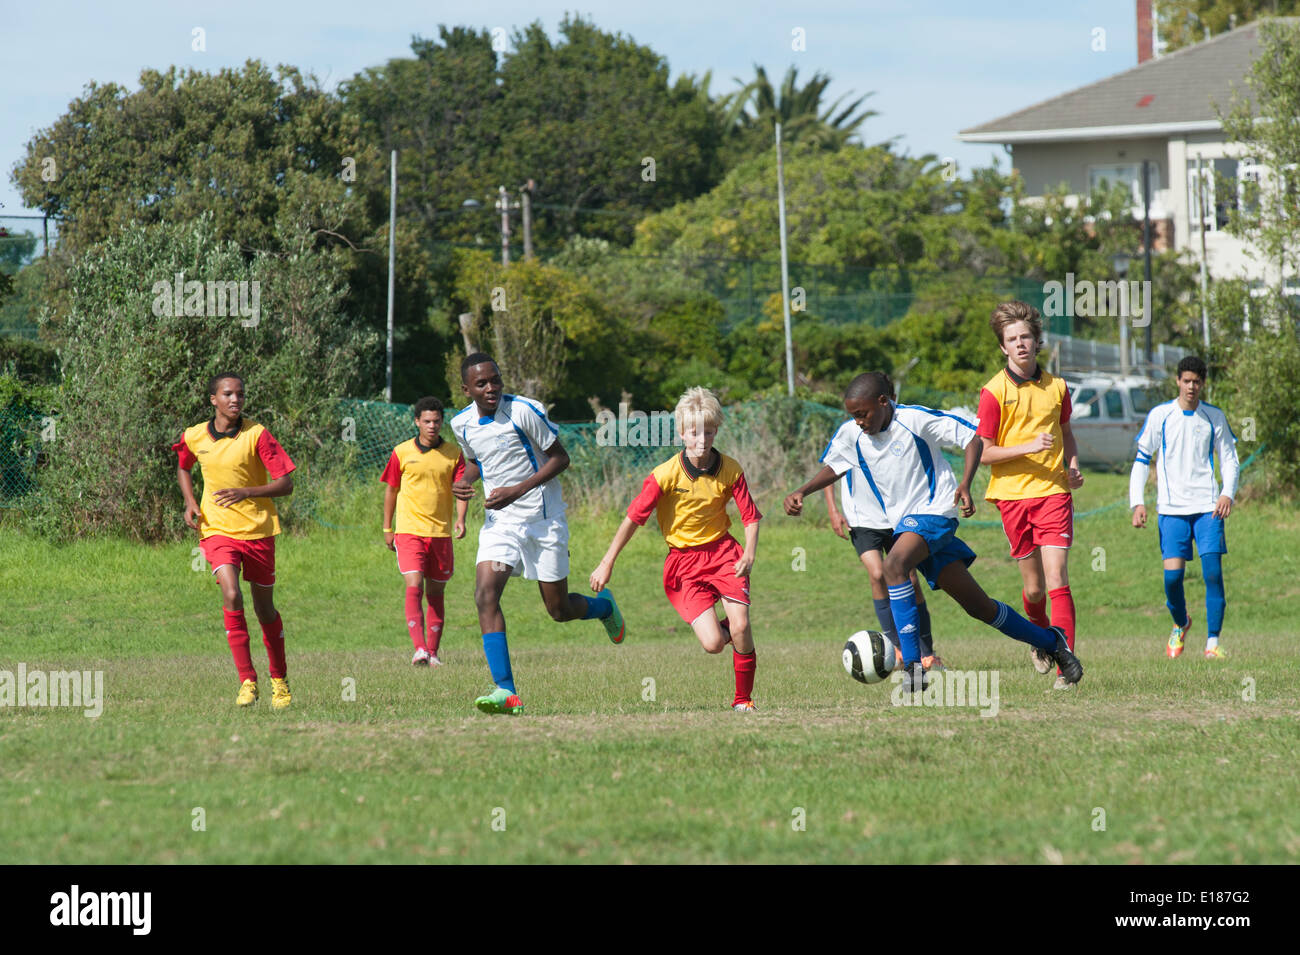 Junior football players chasing the ball, Cape Town, South Africa - Stock Image